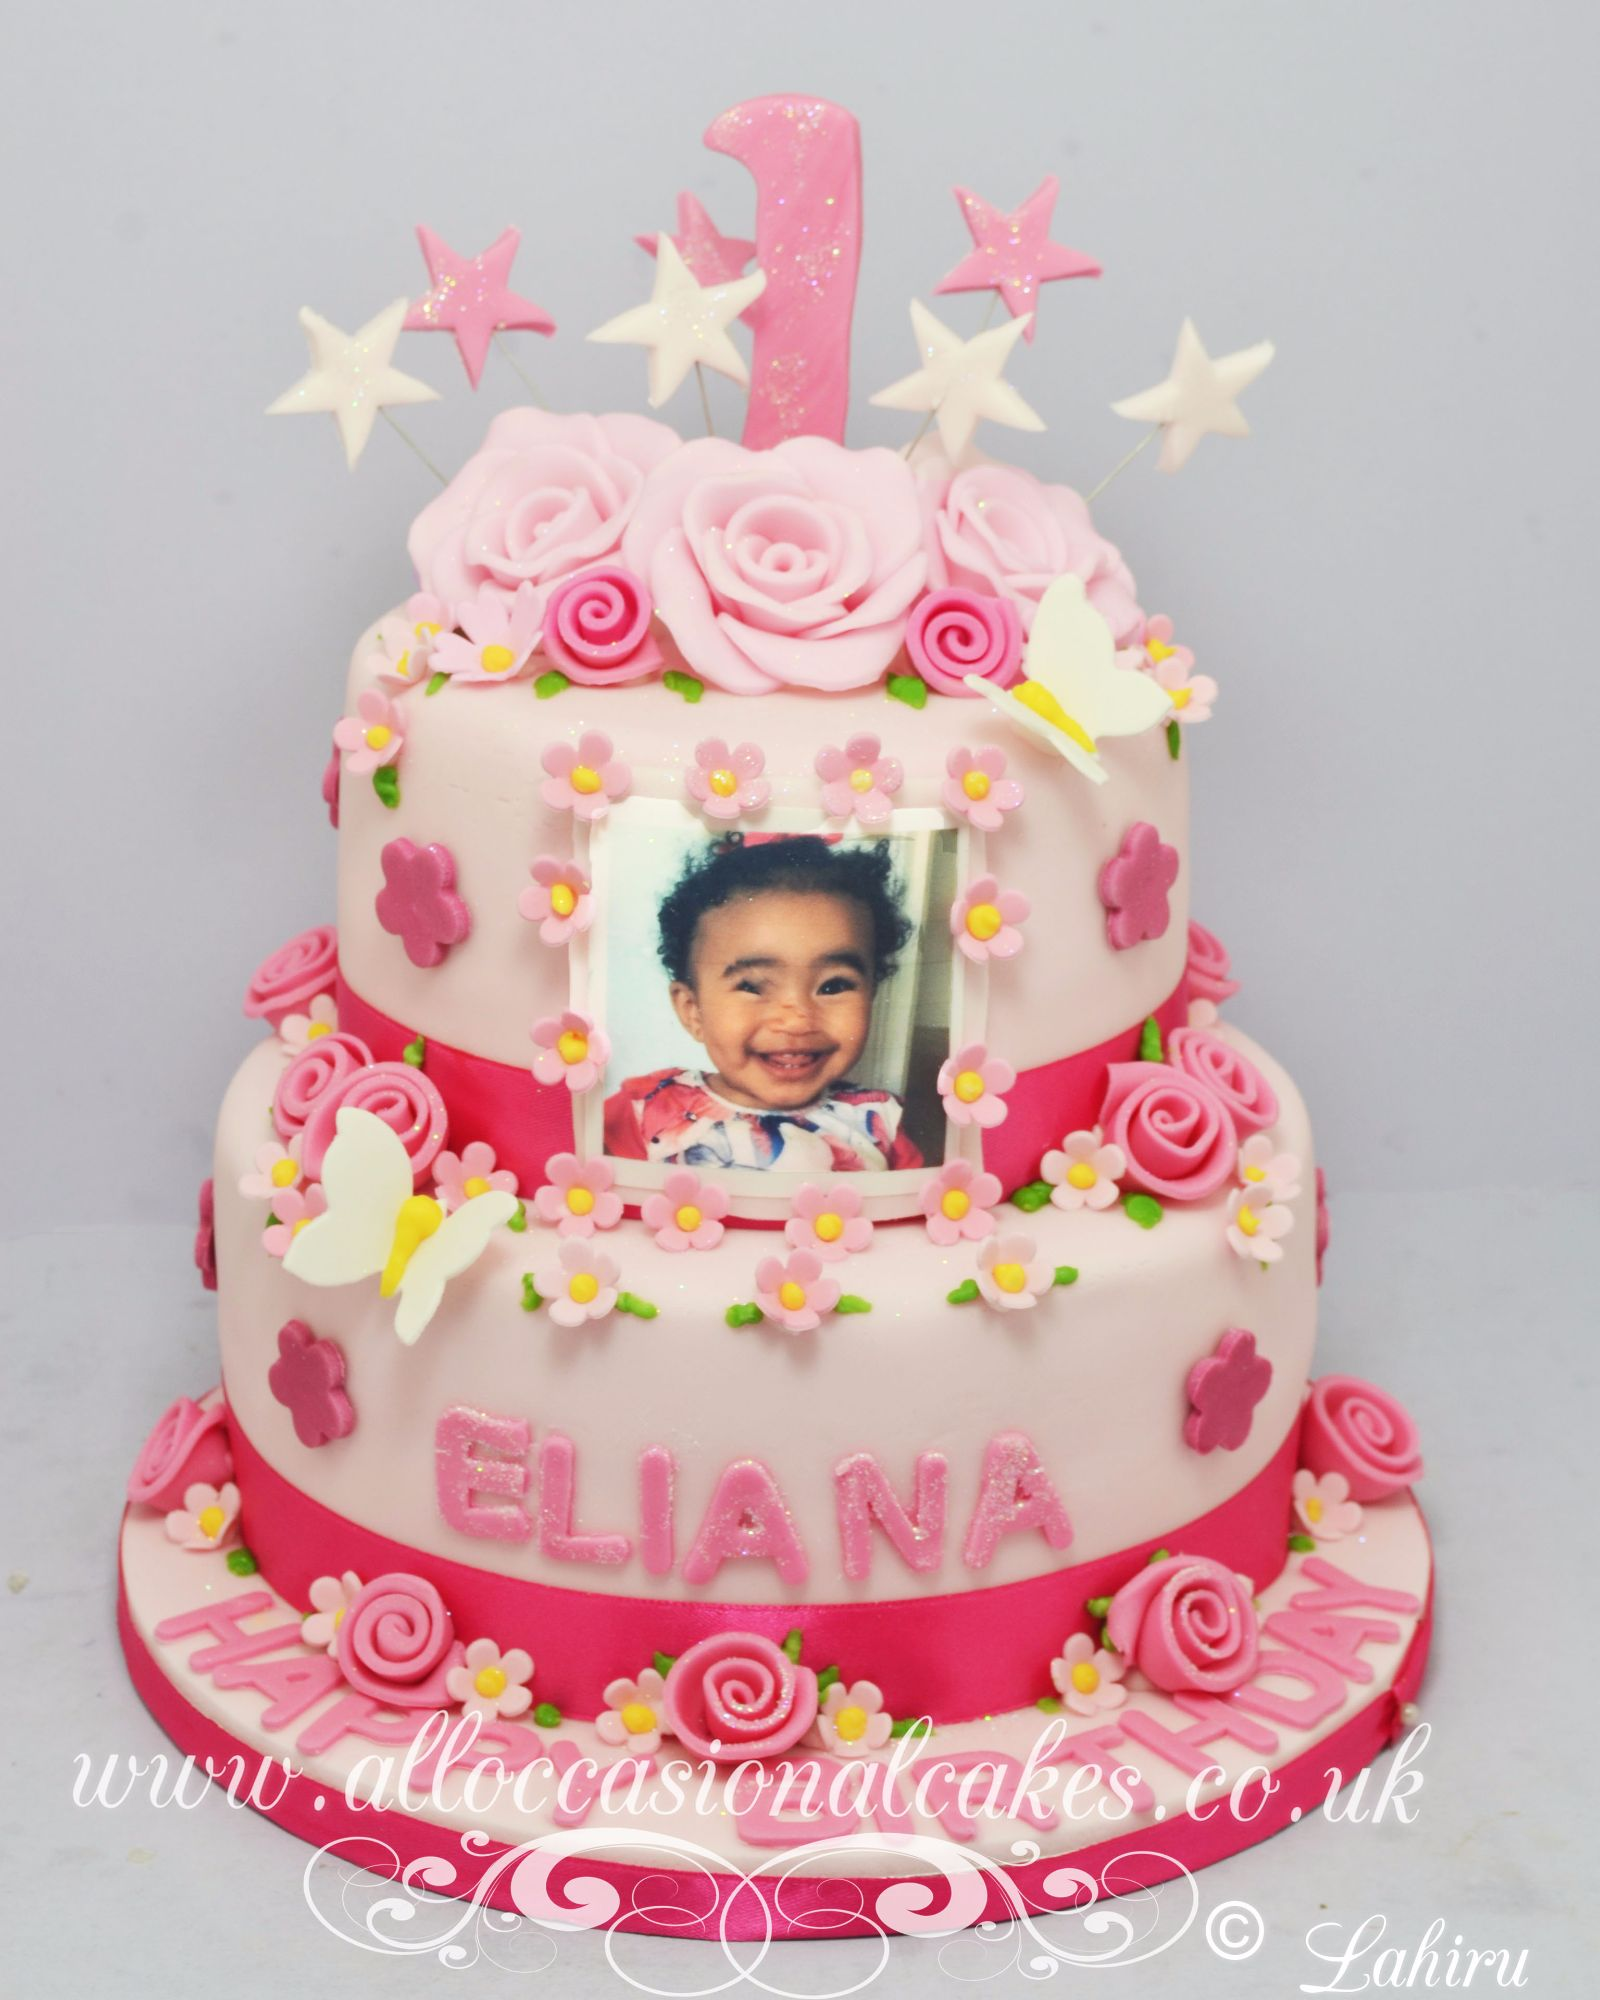 baby's photo on the birthday cake